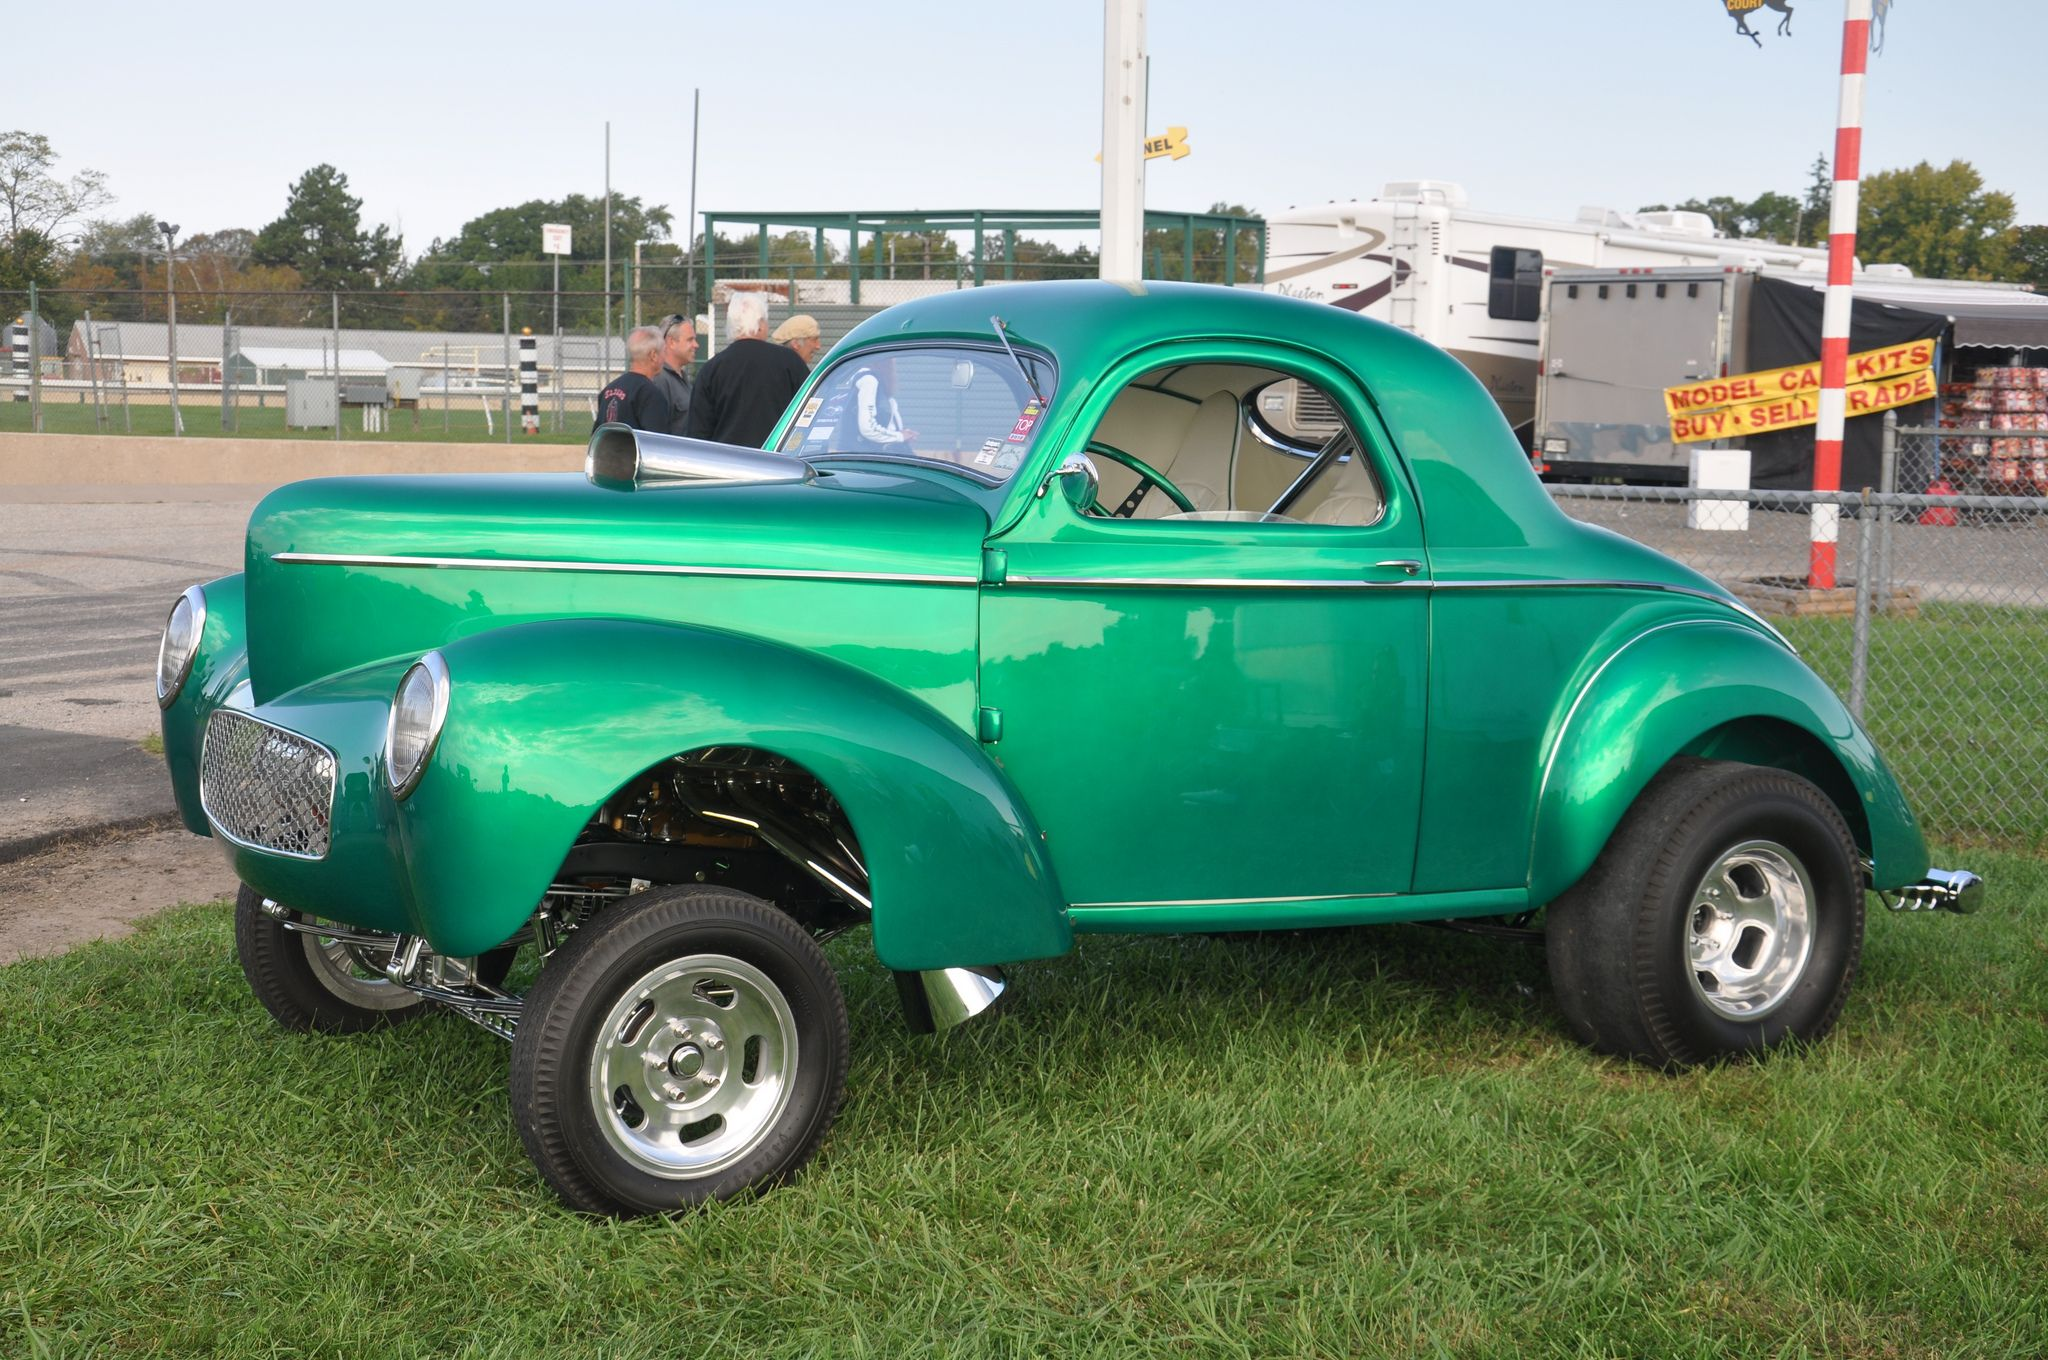 41 Willys Gasser | 41 Willys Gasser On S10 Frame Sale Cars And Parts ...